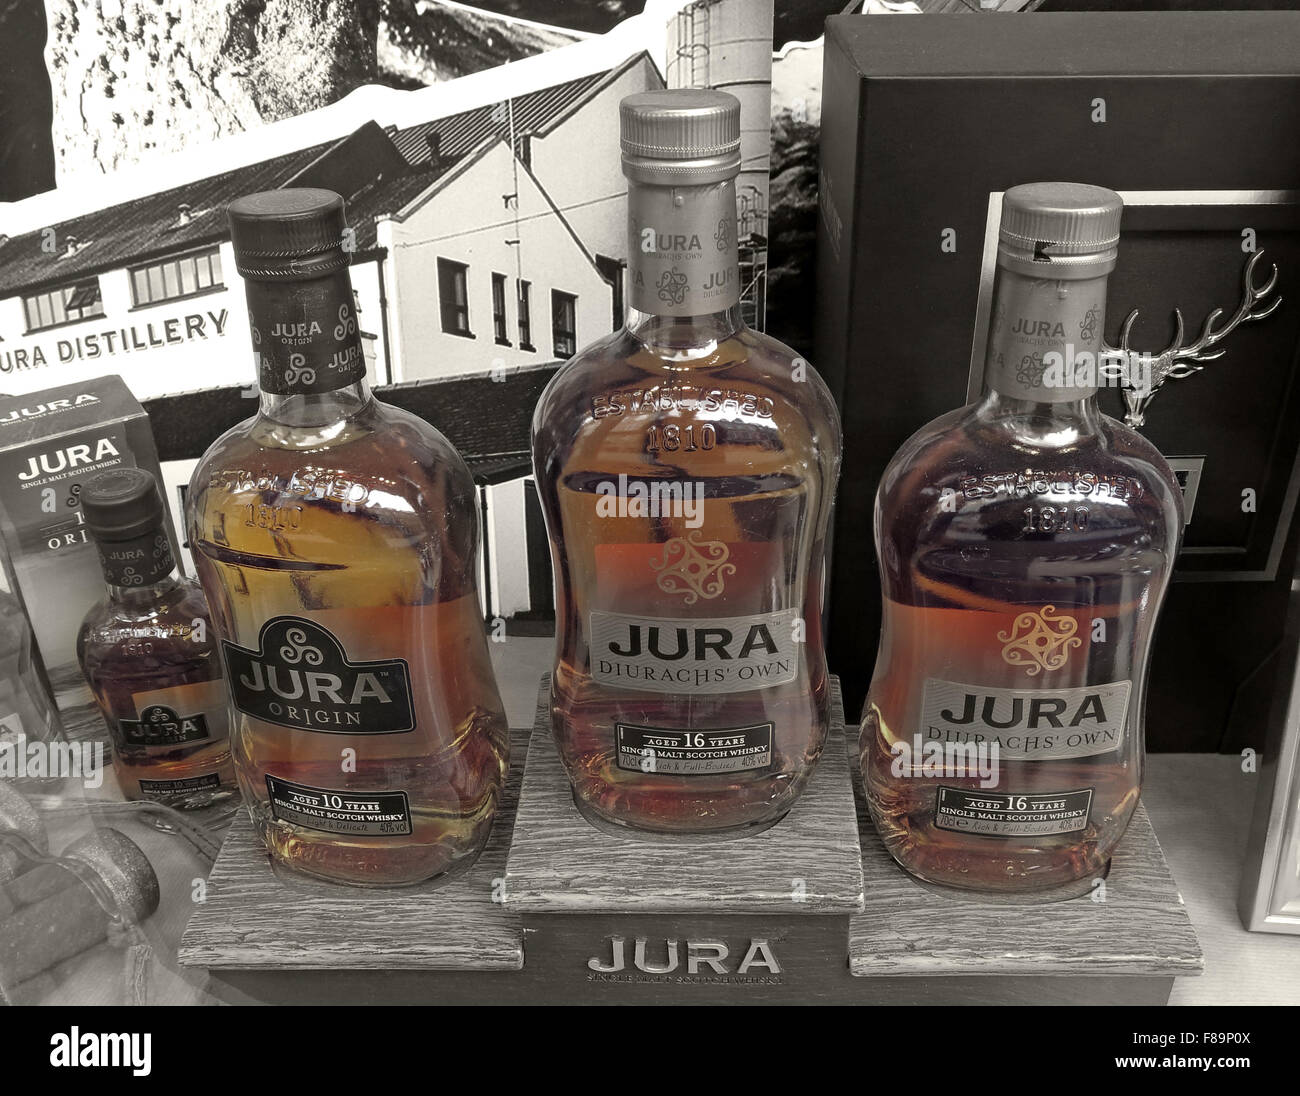 Jura Malt Whisky in shop window, Edinburgh,Scotland,UK - Stock Image